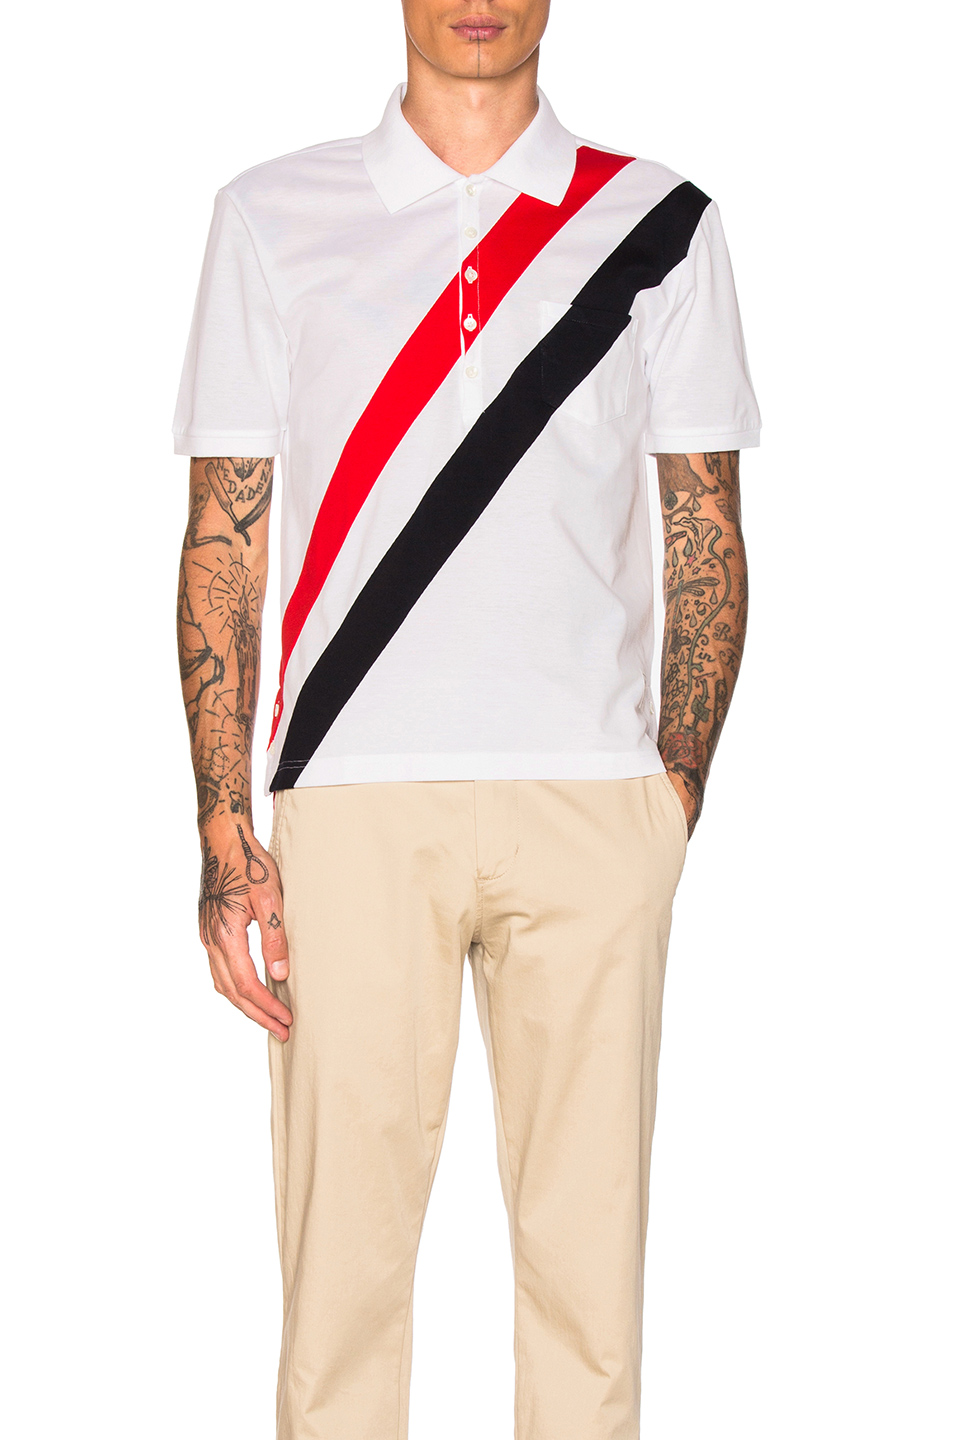 Thom Browne Diagonal Stripes Polo in Blue,Red,Stripes,White